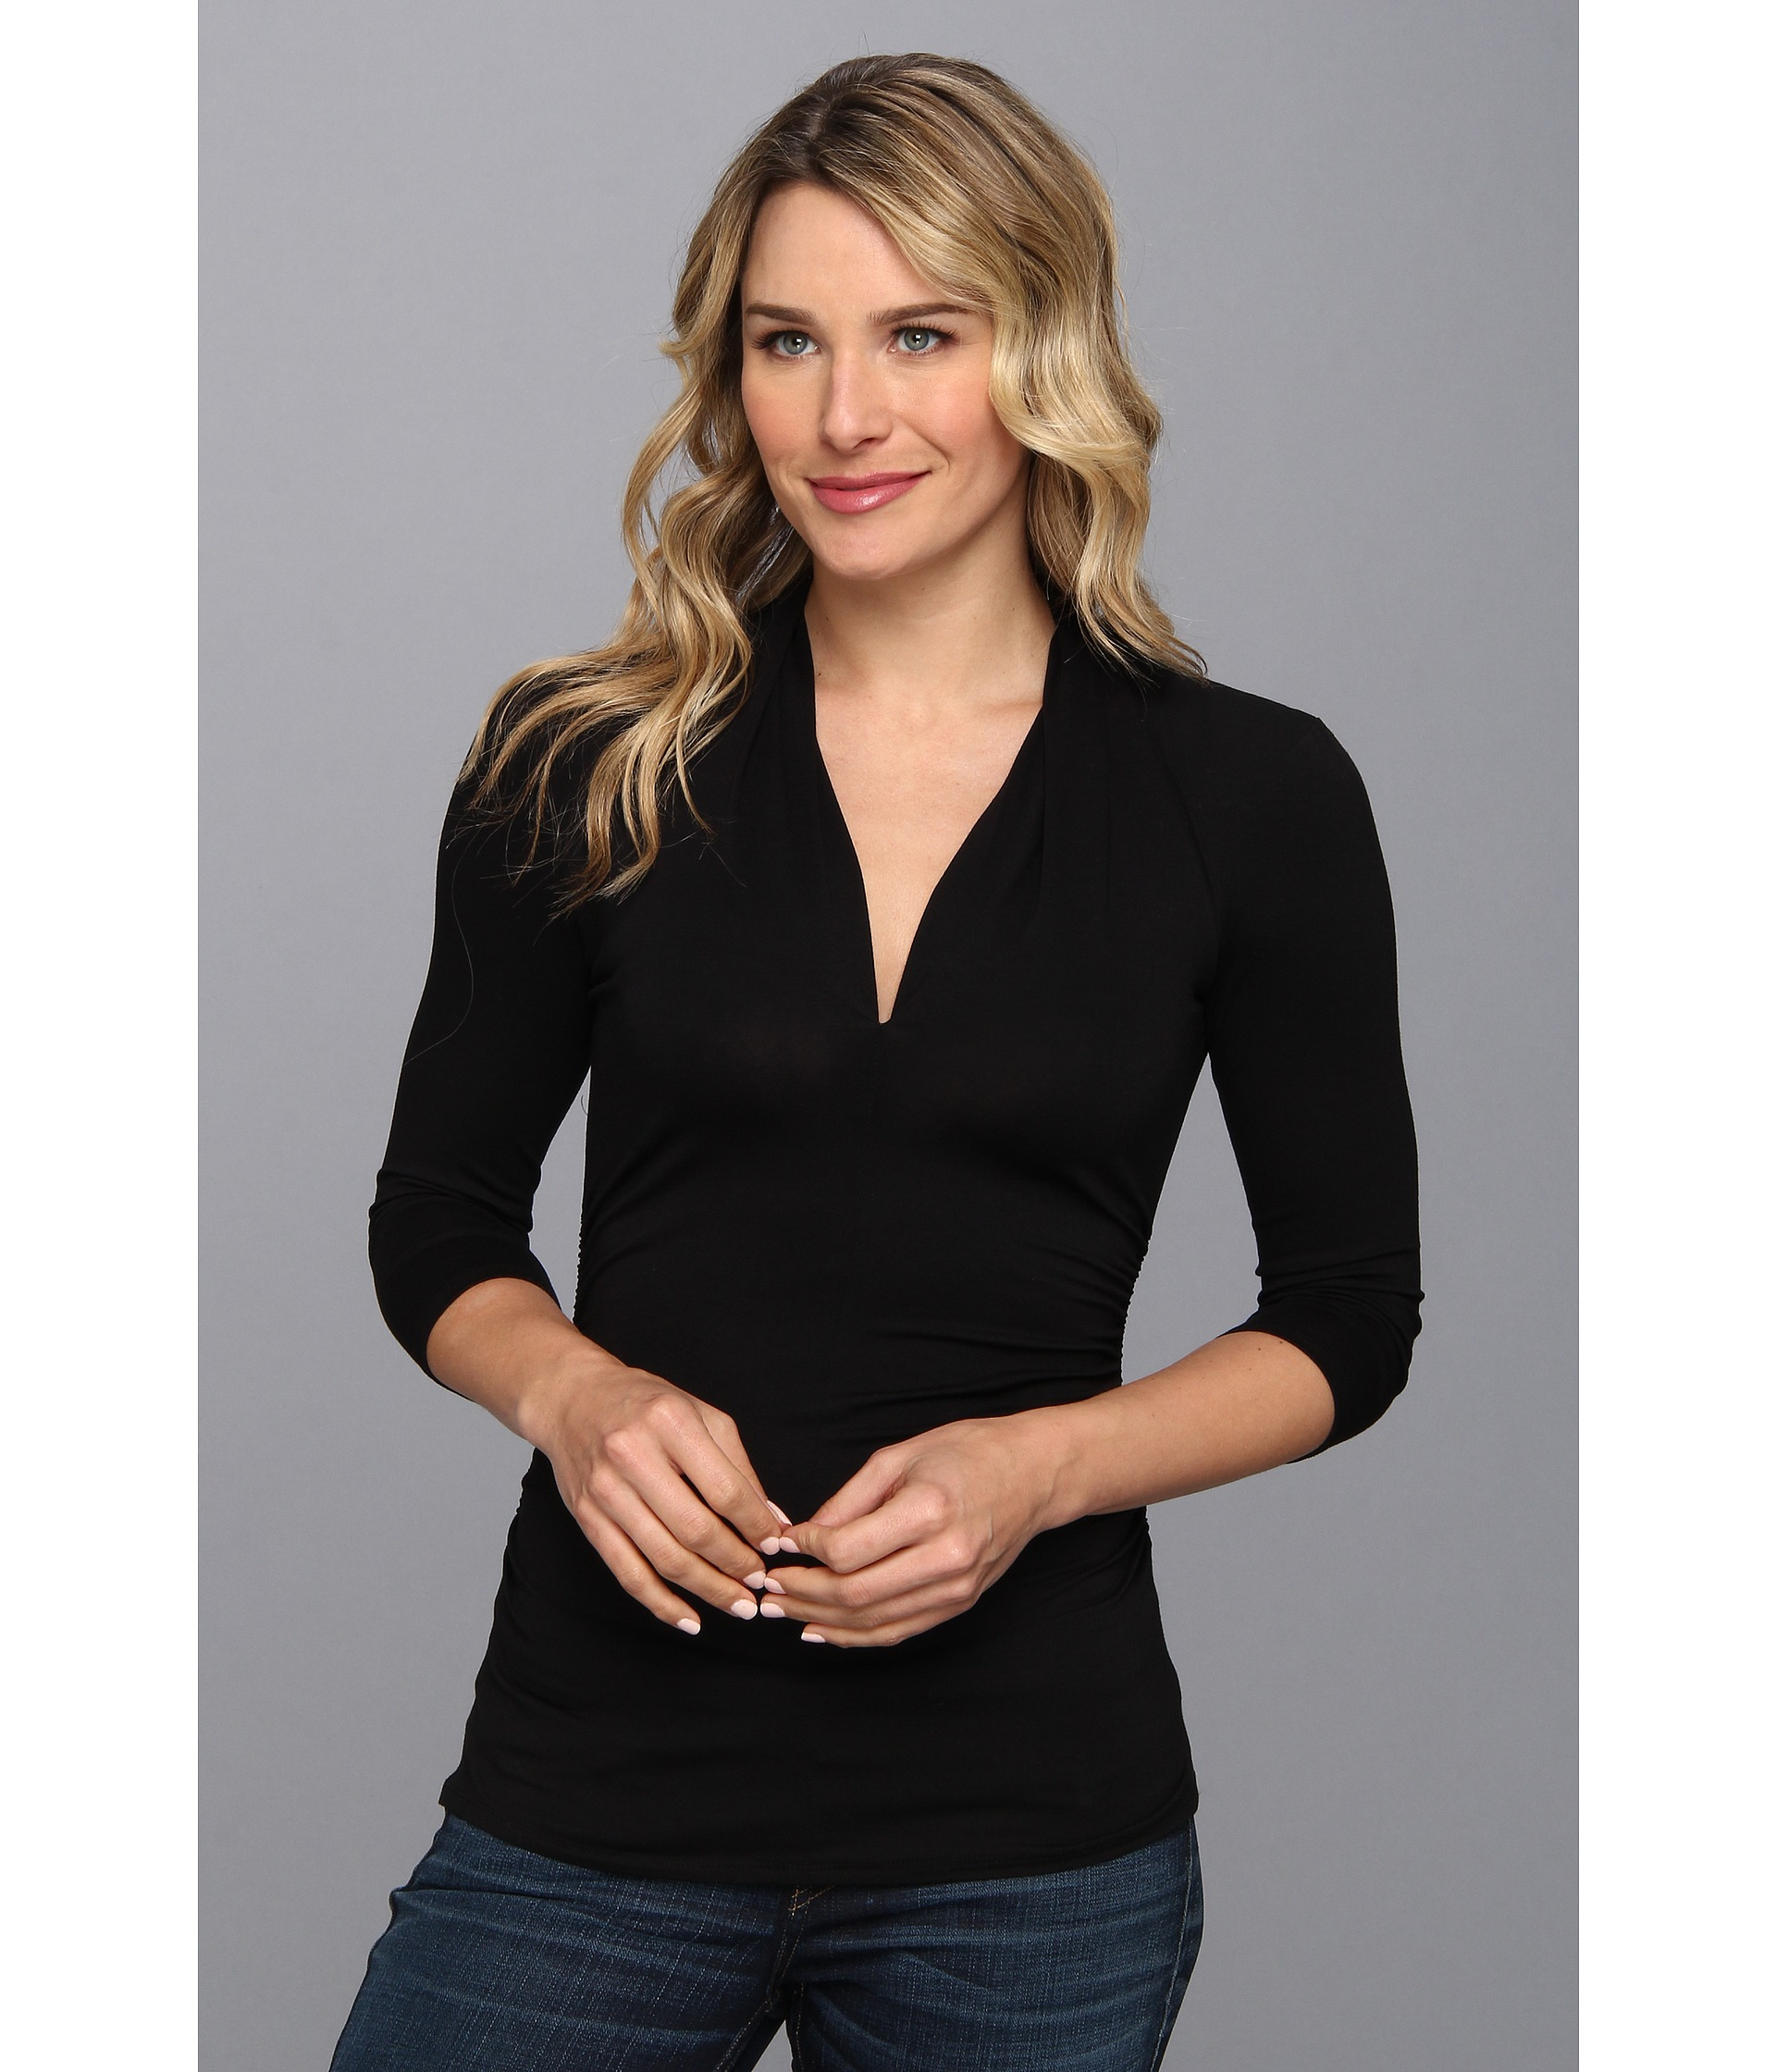 Vince camuto 3/4 Sleeve Pleat V-neck Top in Black (Rich ...